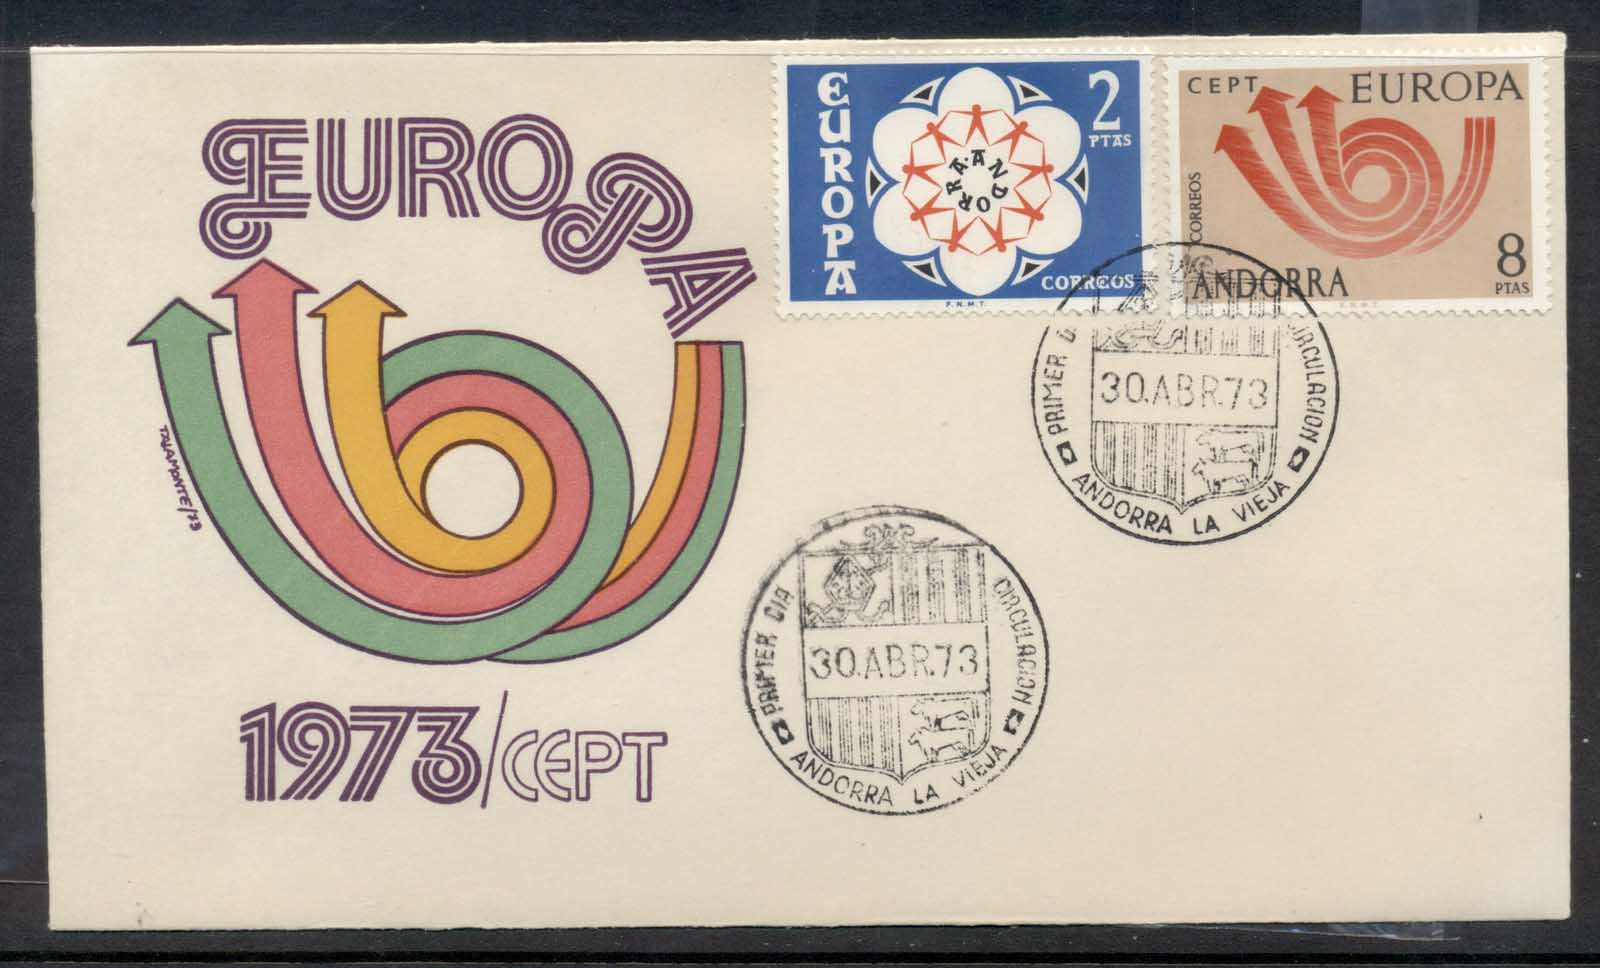 Andorra (Sp.) 1973 Europa Posthorn Arrow FDC